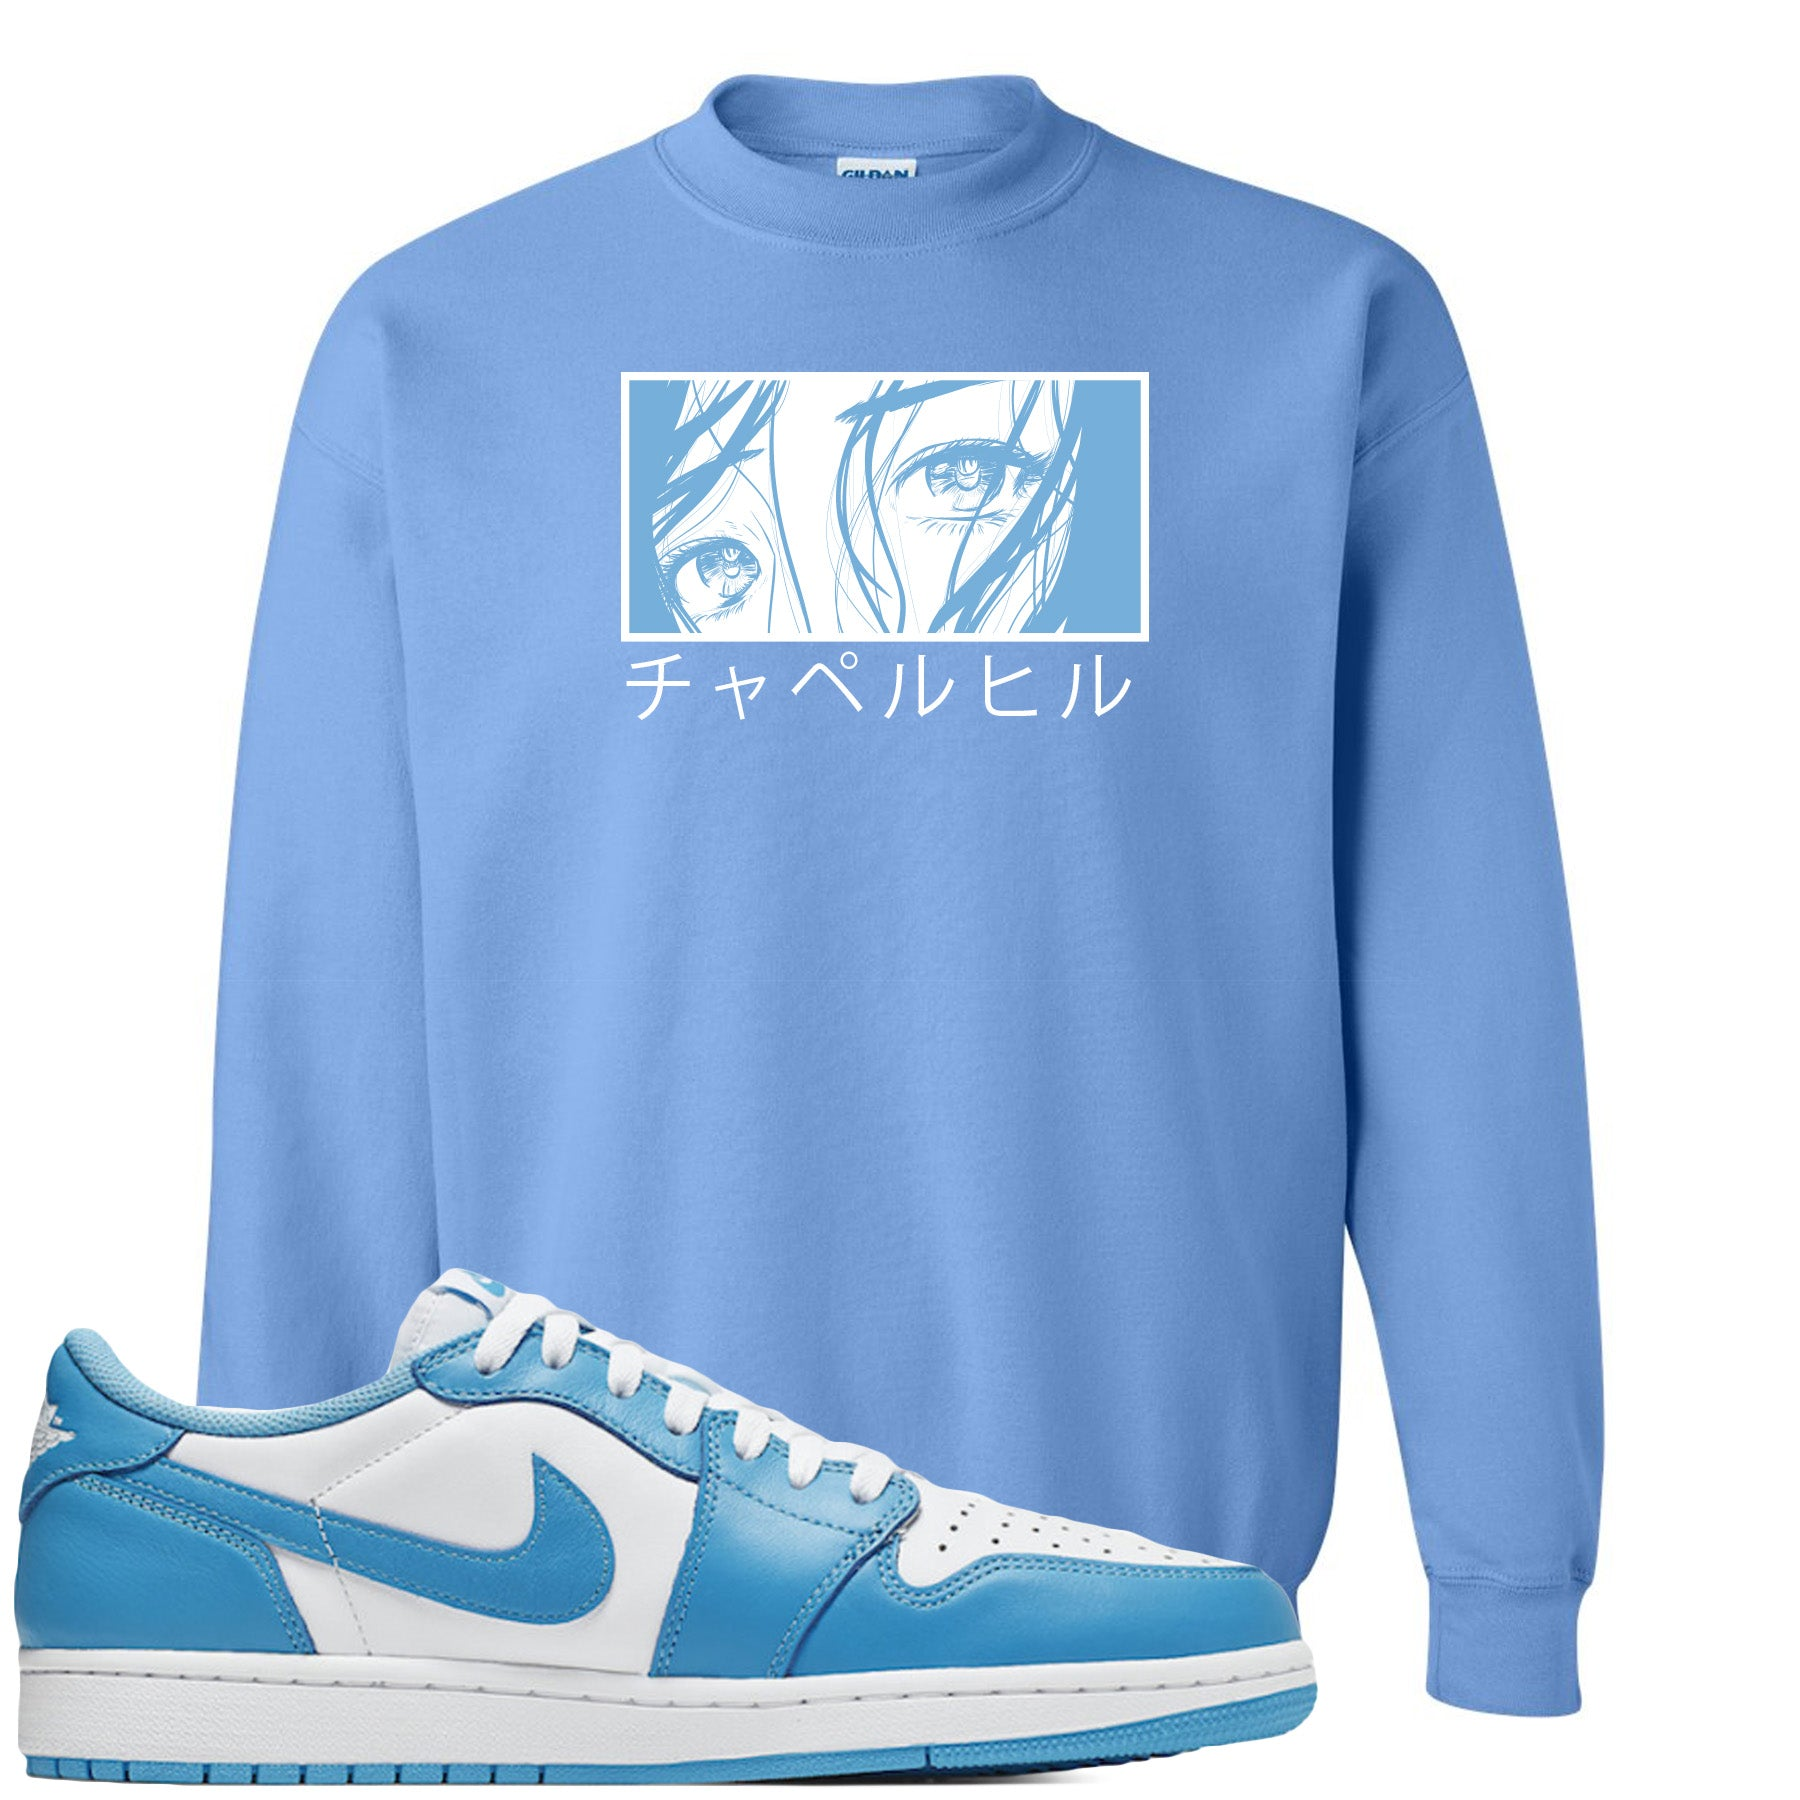 Nike Sb X Air Jordan 1 Low Unc Sneaker Hook Up Chapel Hill